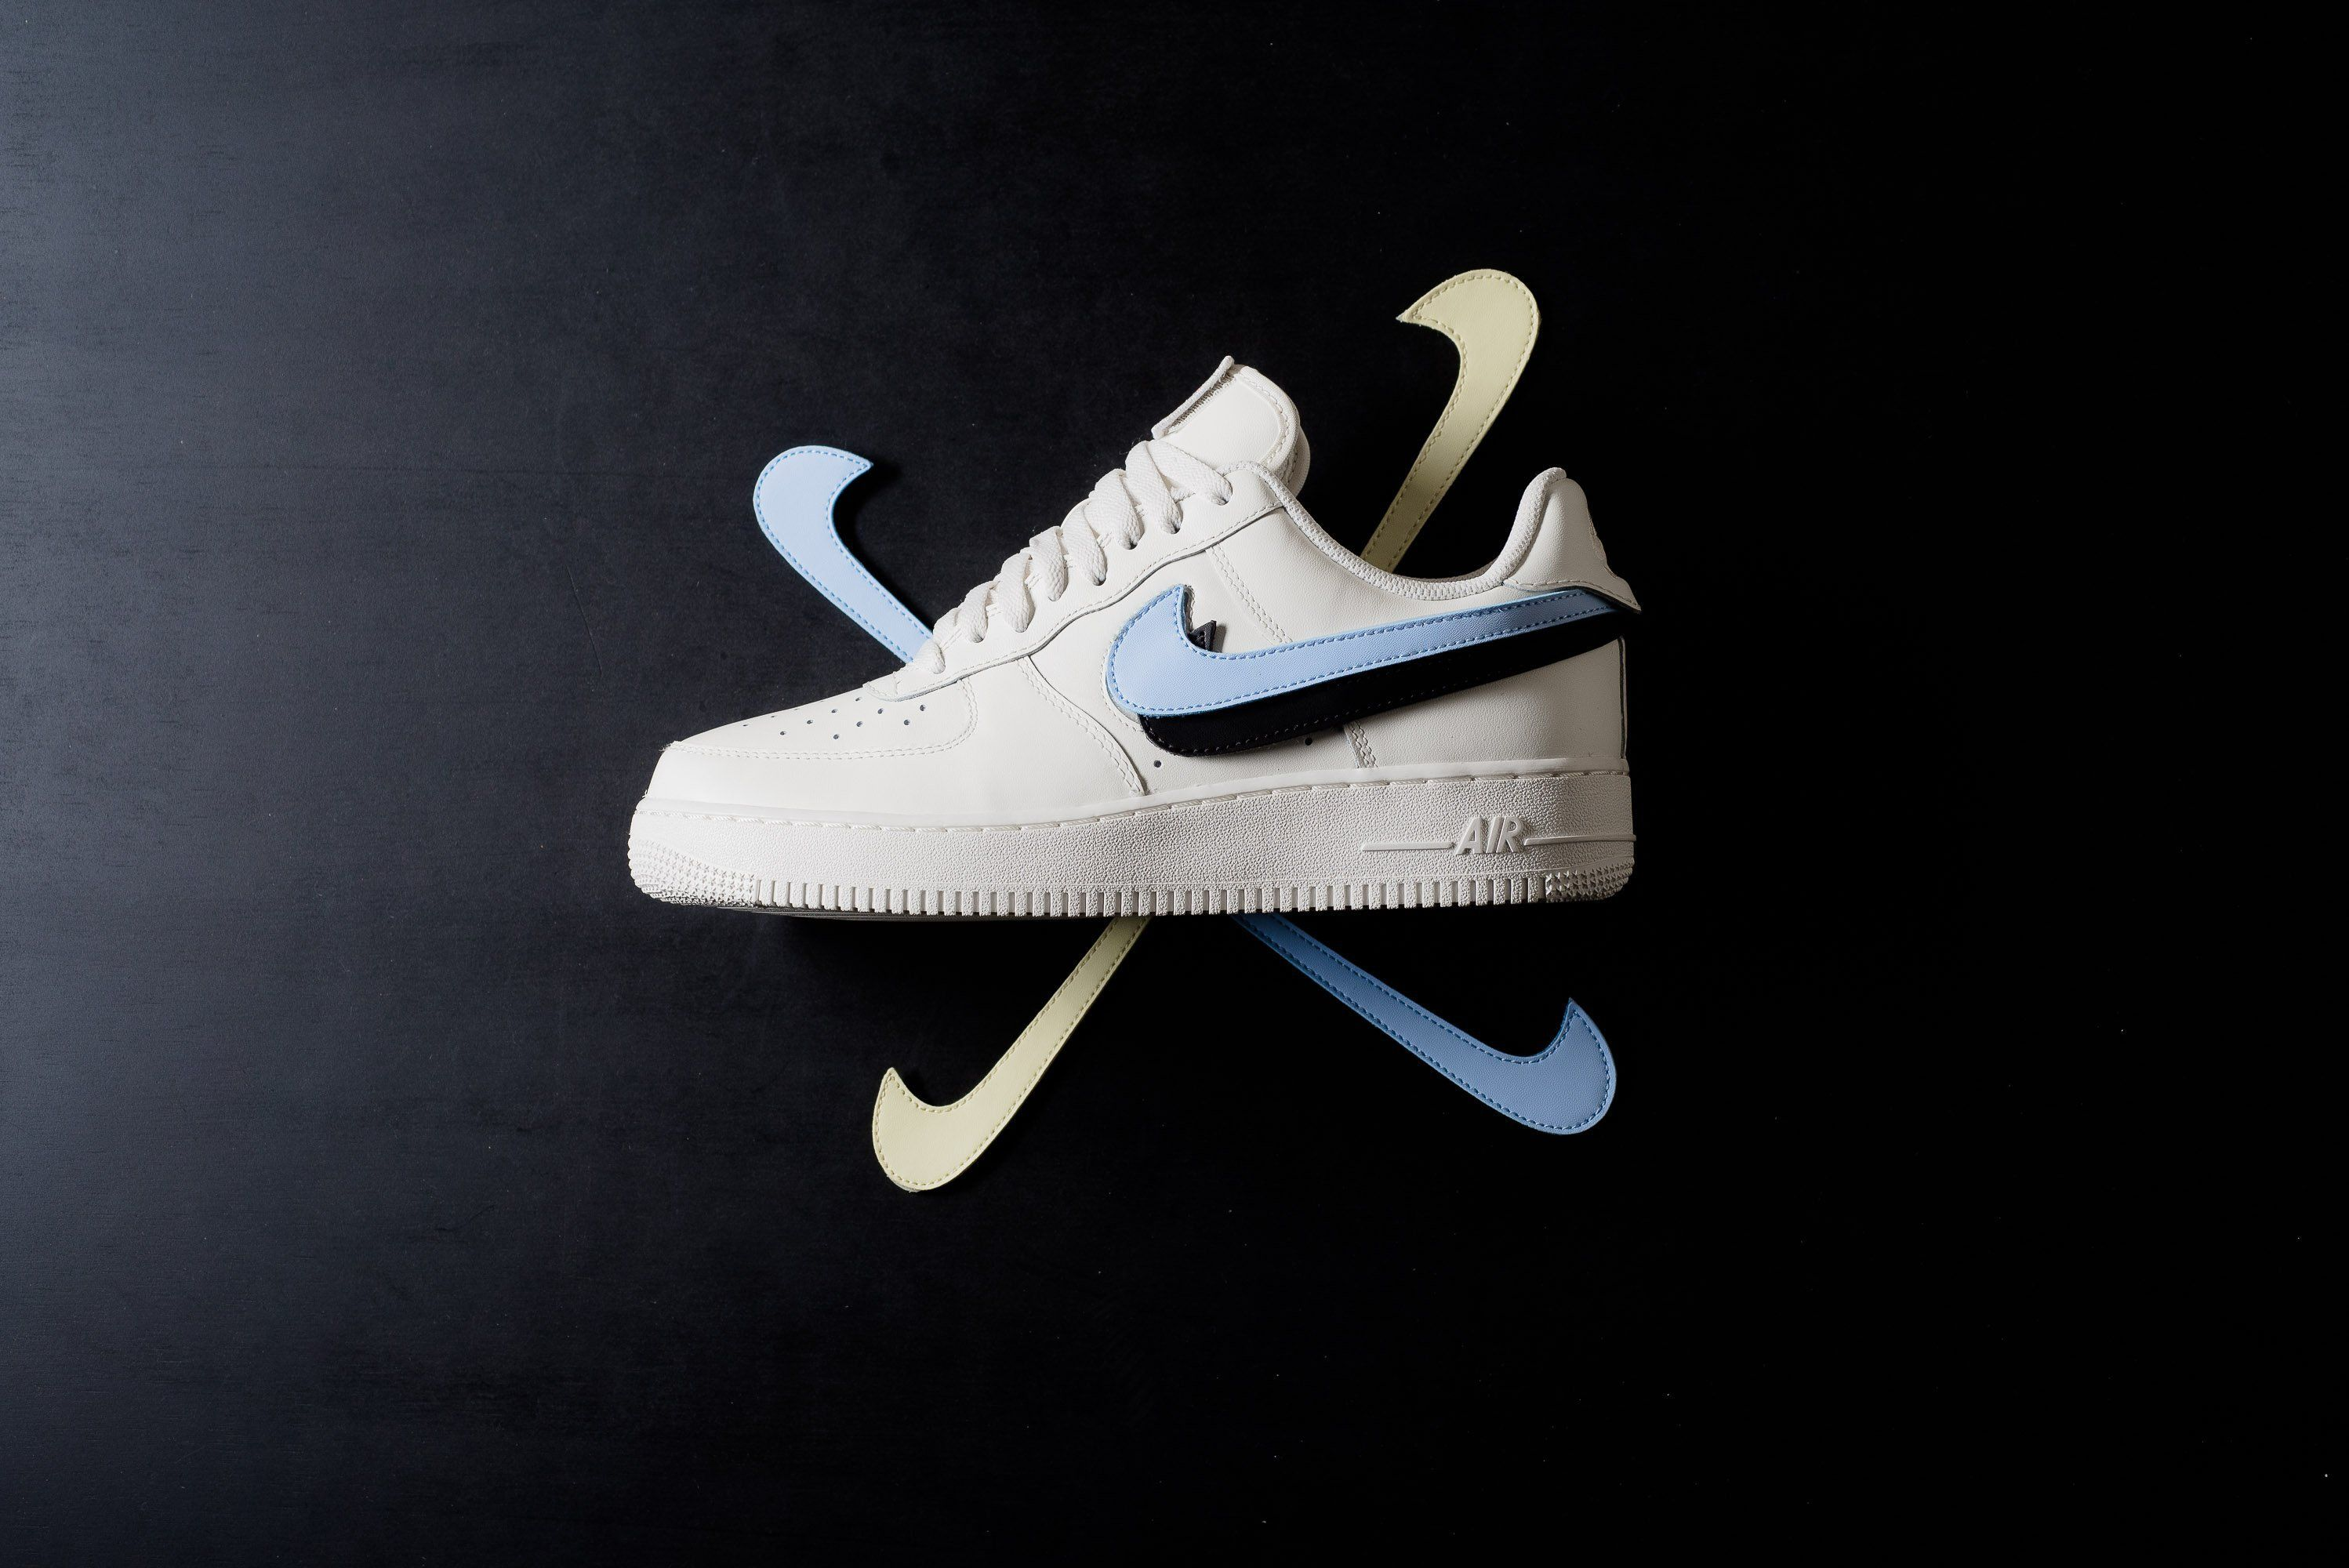 hot sale online 1123e 54652 Nike Air Force 1 07 QS Swoosh Pack